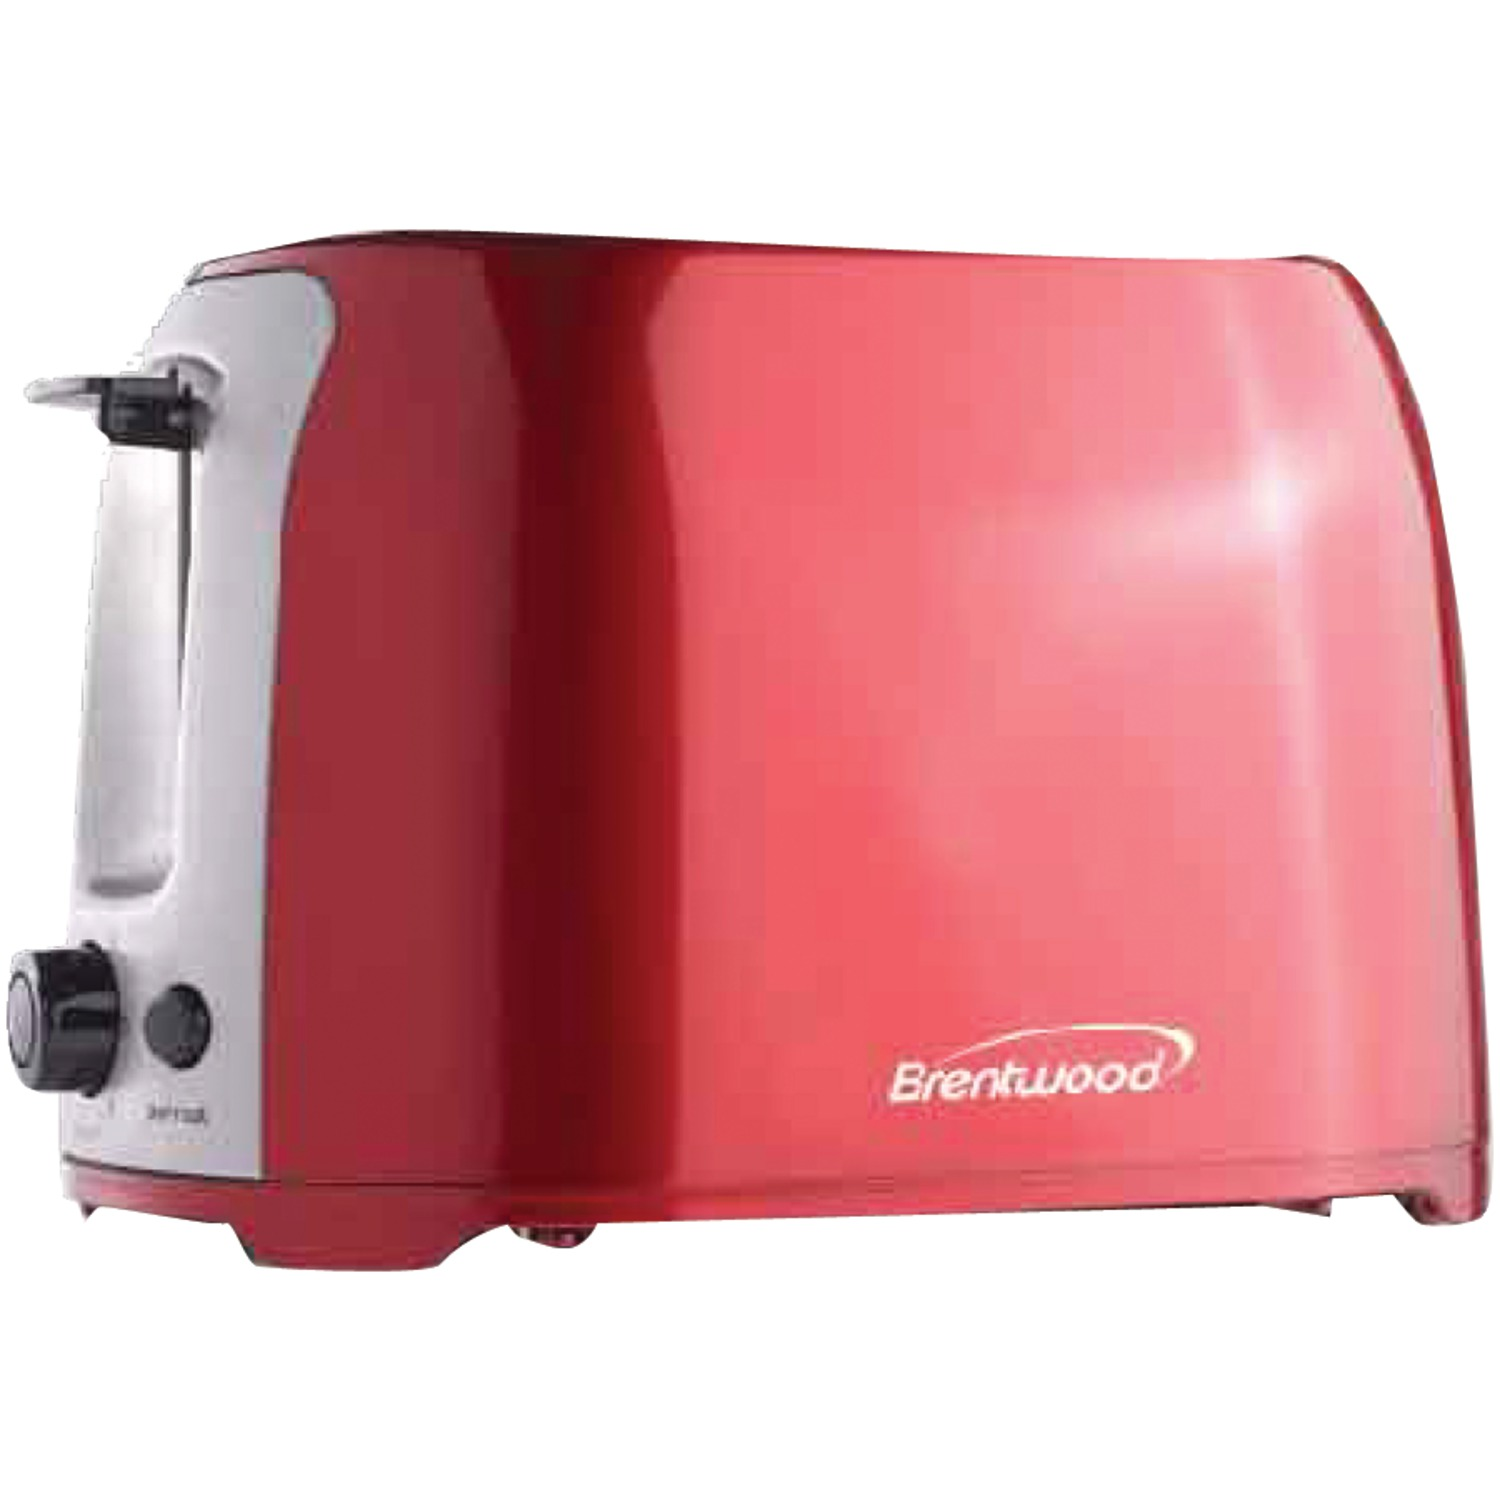 Brentwood Appliances TS-292R 2-slice Cool Touch Toaster (red & Stainless Steel)